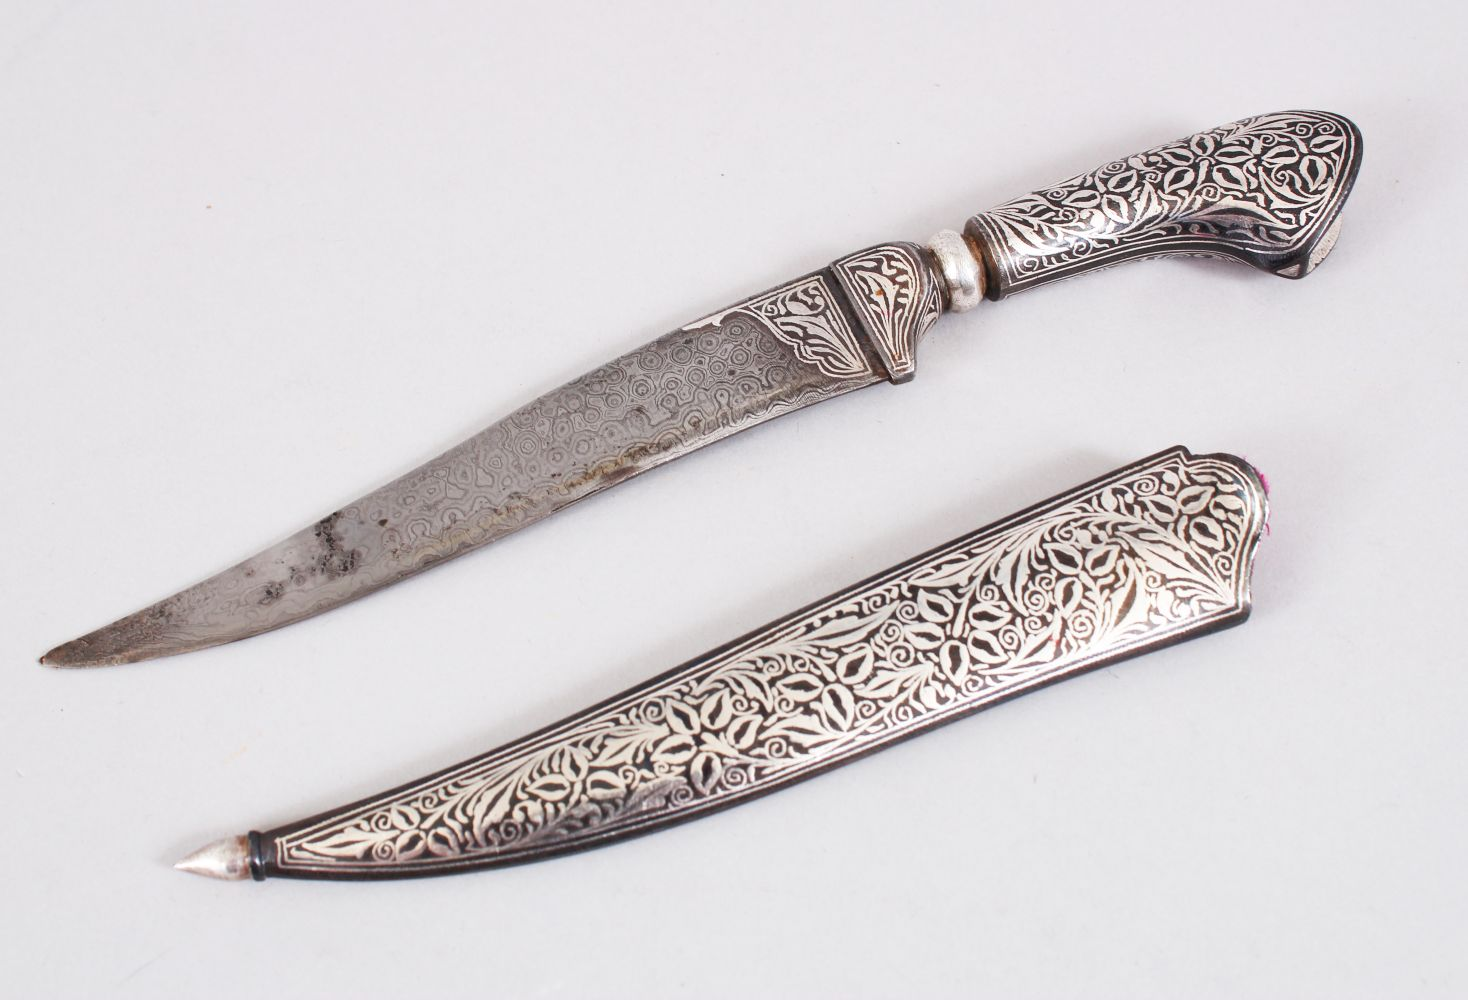 Lot 41 - A GOOD ISLAMIC / CAUCASIAN NIELLO SILVER INLAID DAGGER / KINDJAL, the body and case inlaid heavily